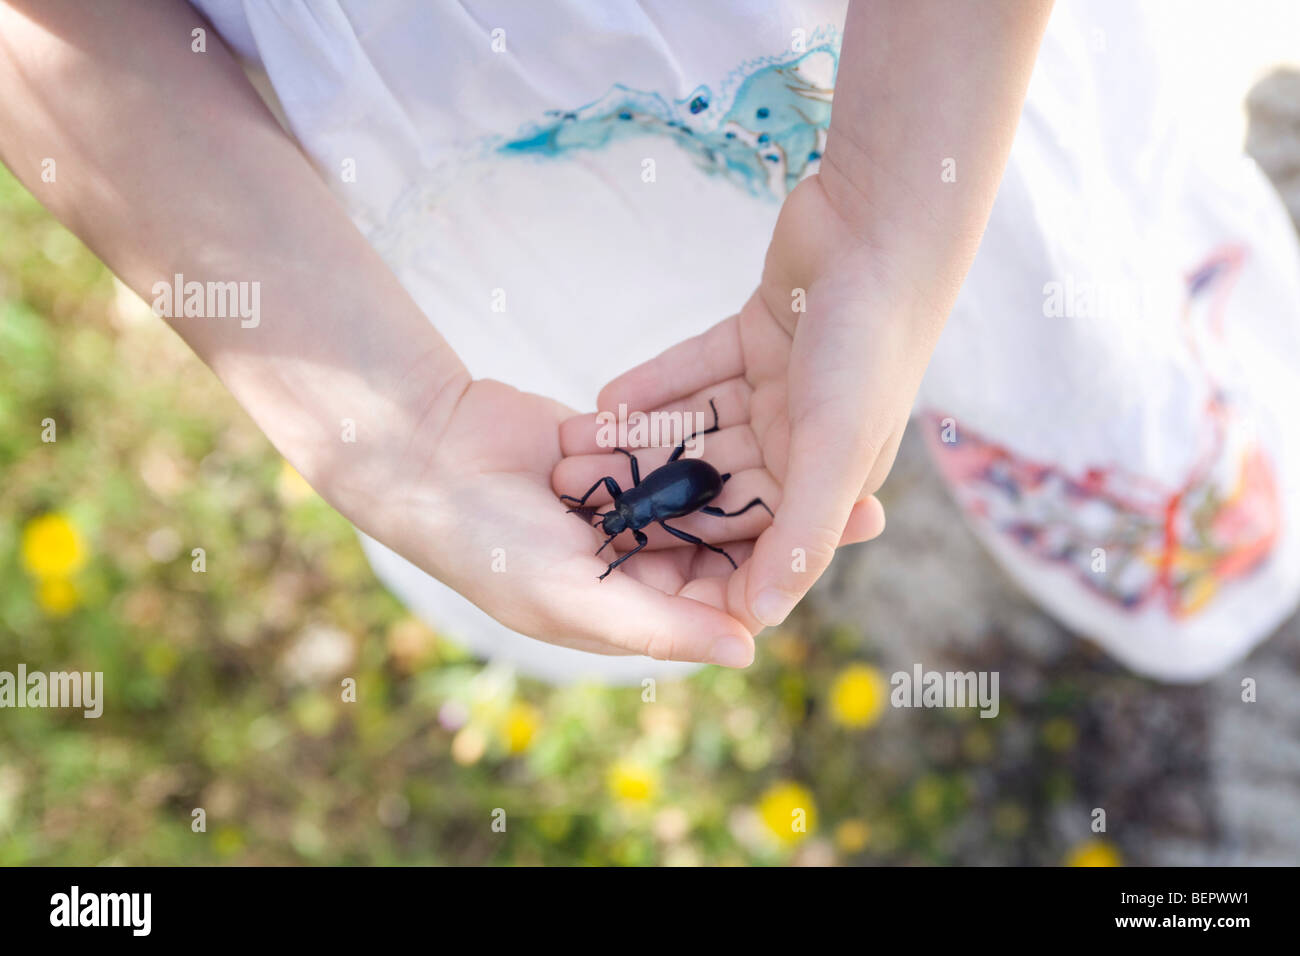 A young girl holding a beetle - Stock Image